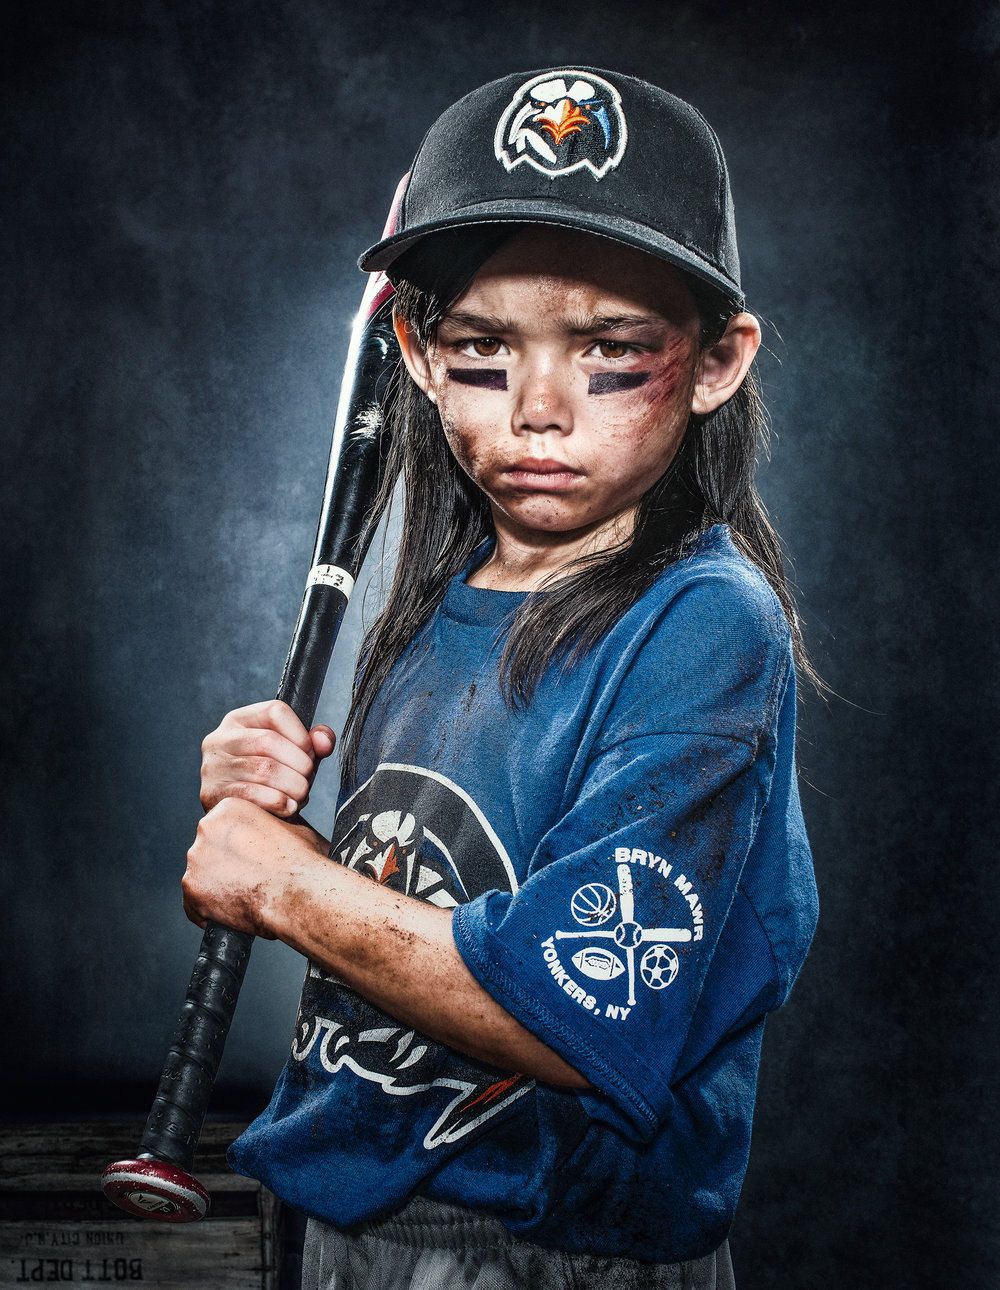 T-BALL_KIDS_20172184-W3_F_RGB.jpg